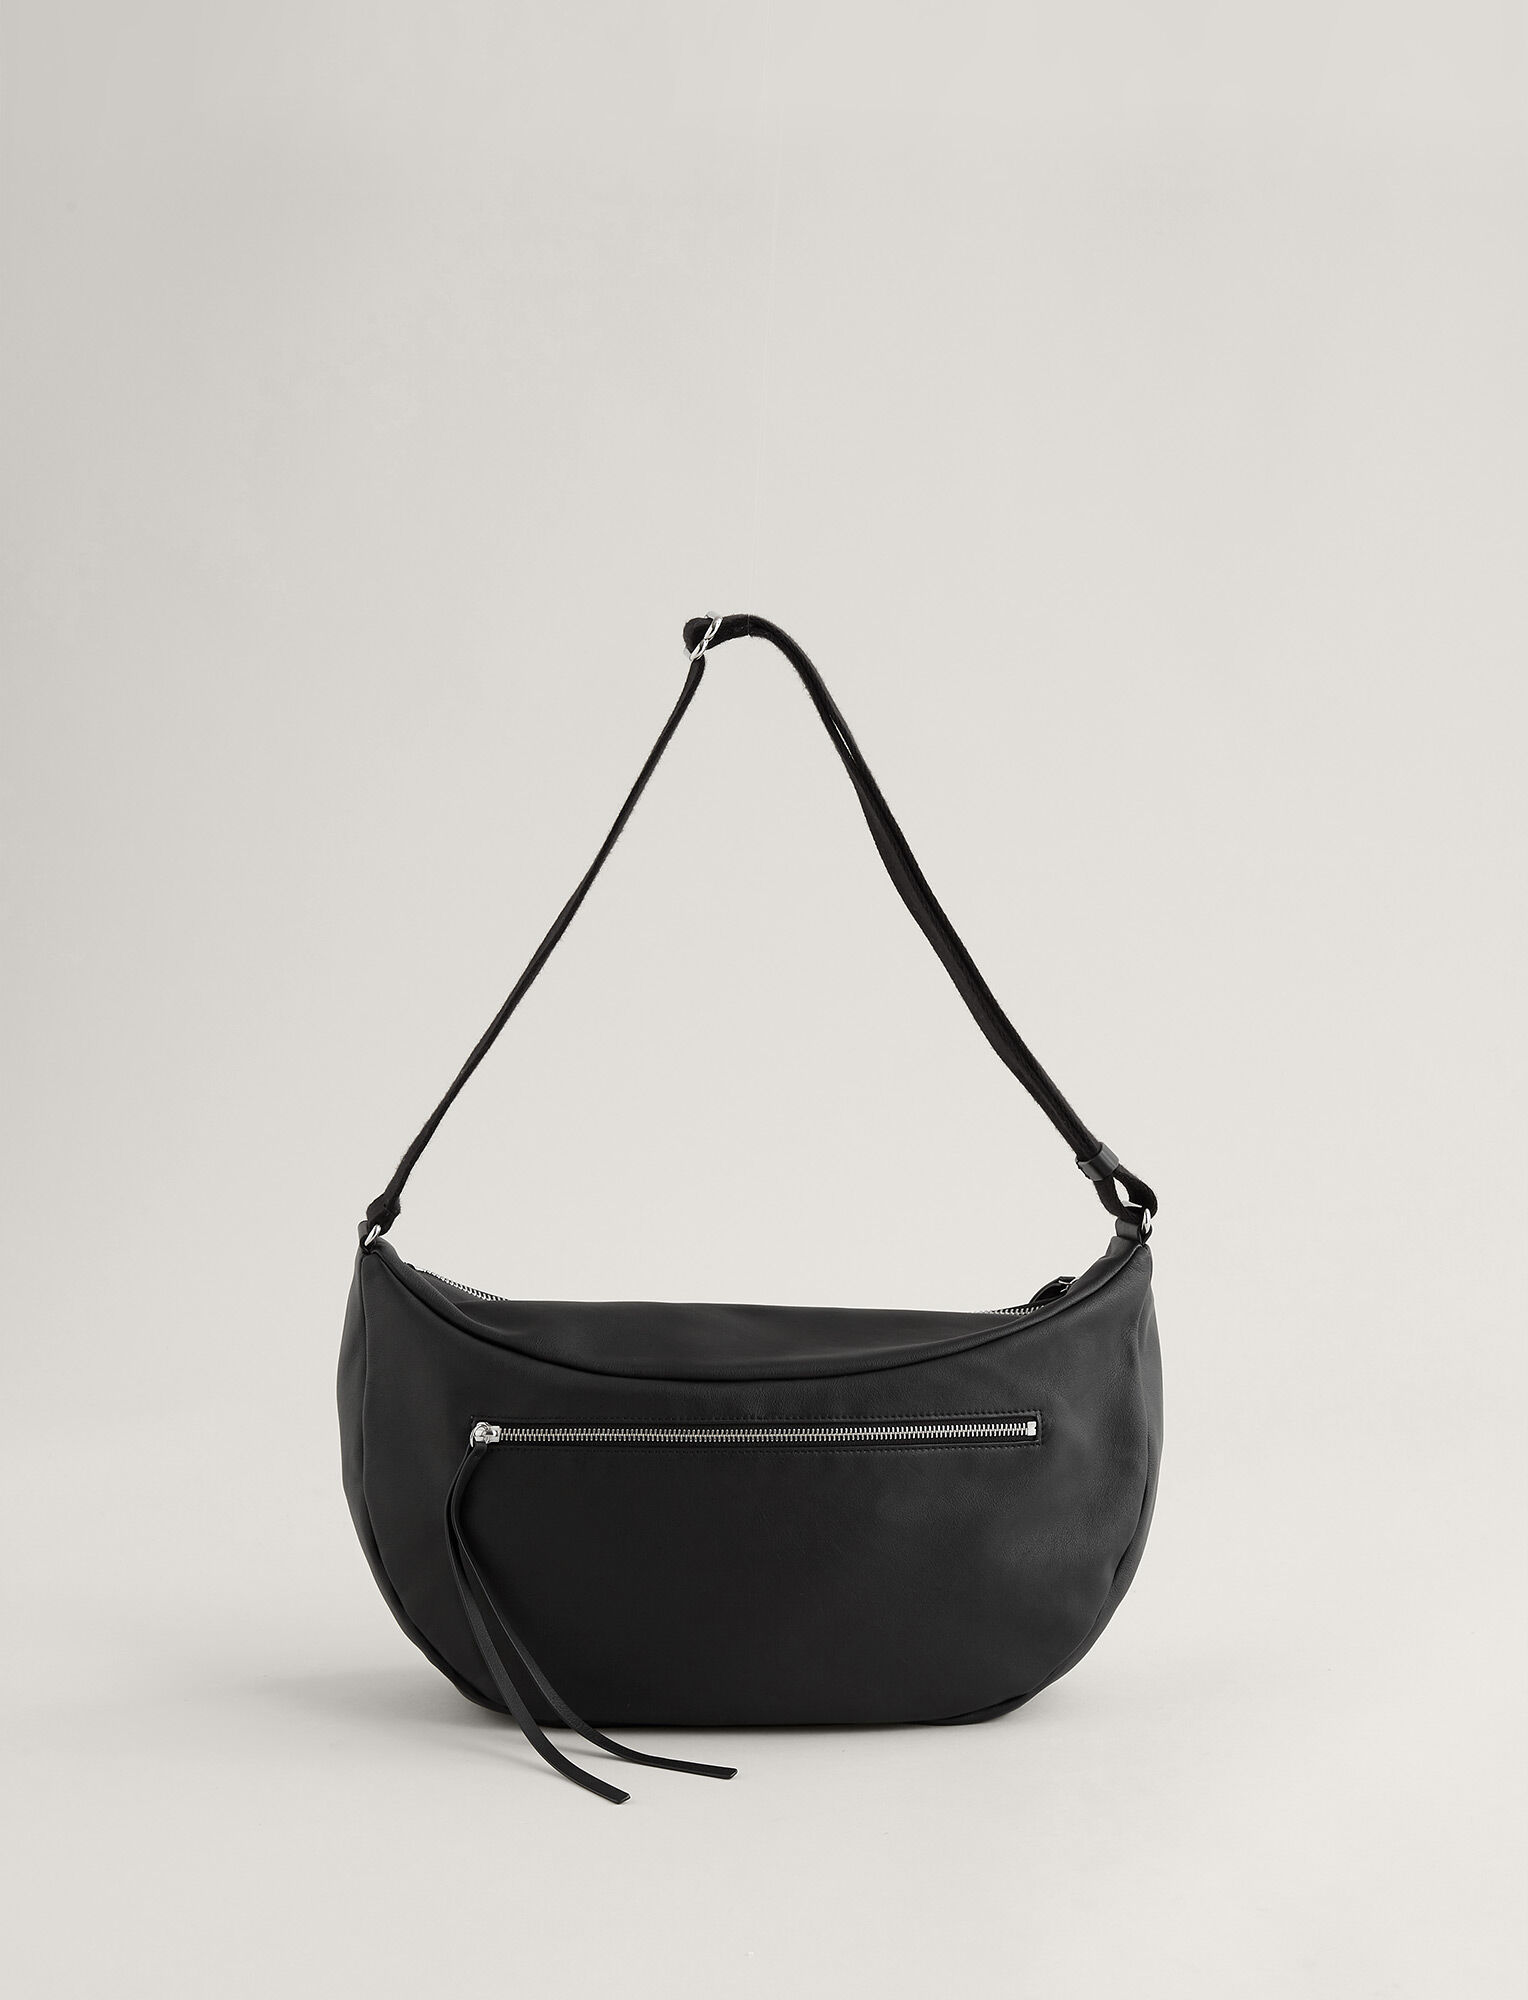 Joseph, Marylebone Leather Bag, in BLACK